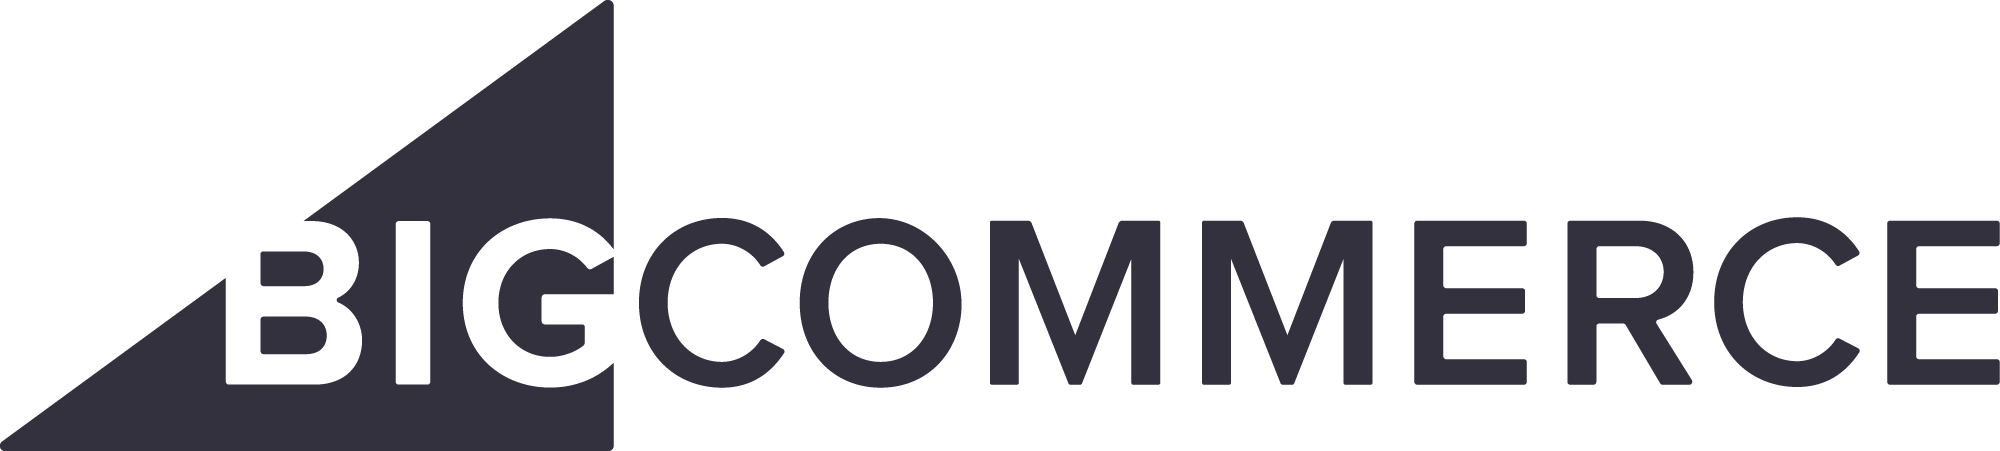 BIGCOMMERCE - eCommerce Platform for Acumatica